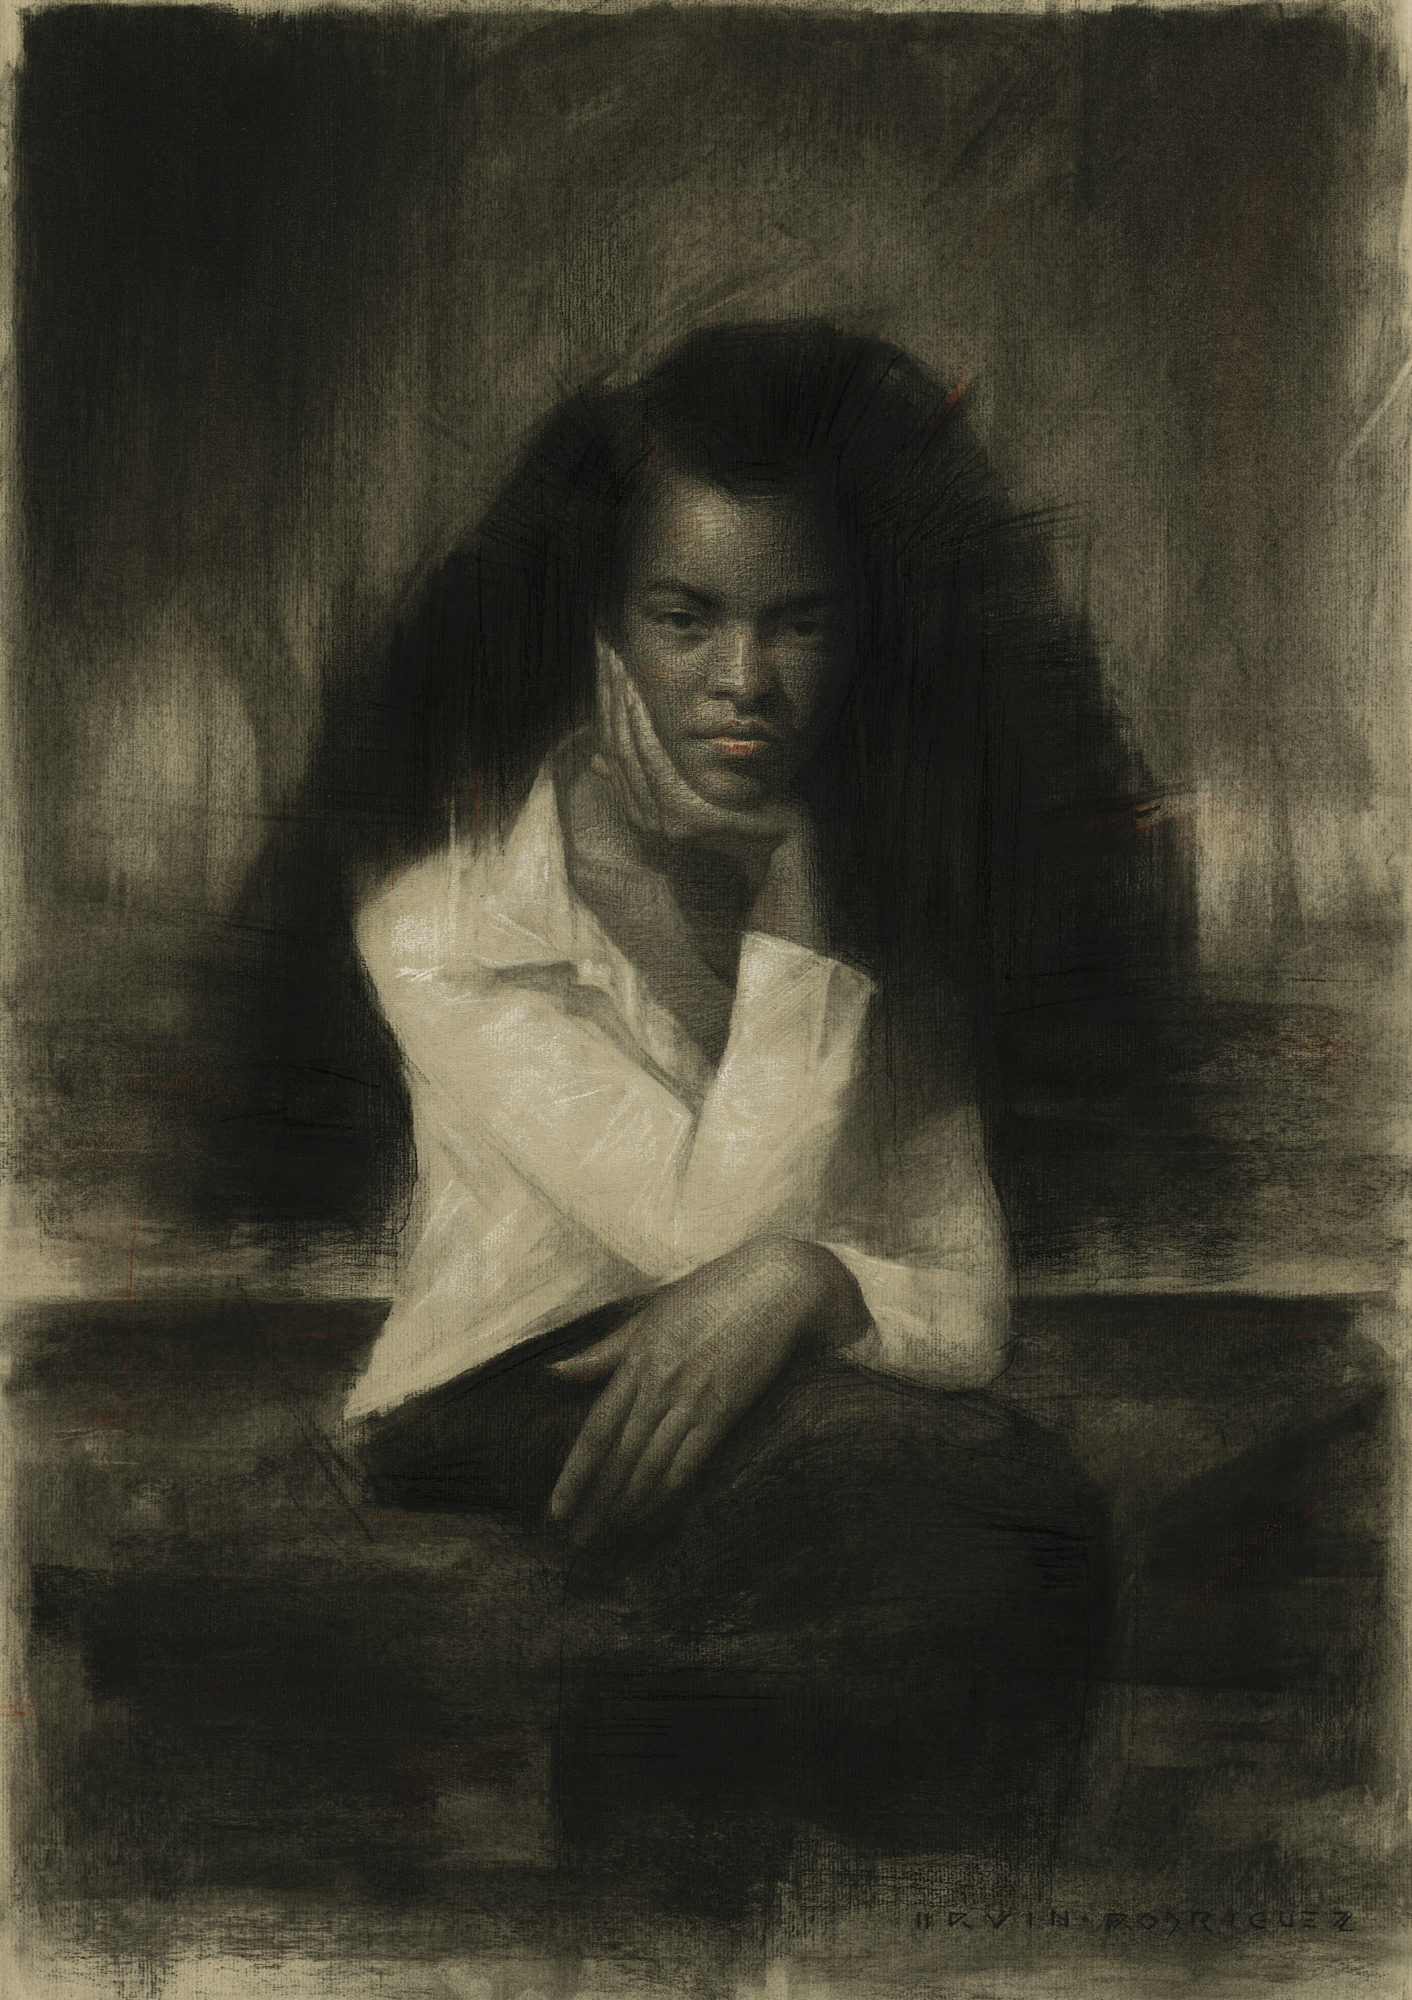 Irvin Rodriguez | Lost in a Gaze | Charcoal and Pastel on Paper | 27 ½ x 19 ½ inches or 69 ¾ x 49 ½ cm